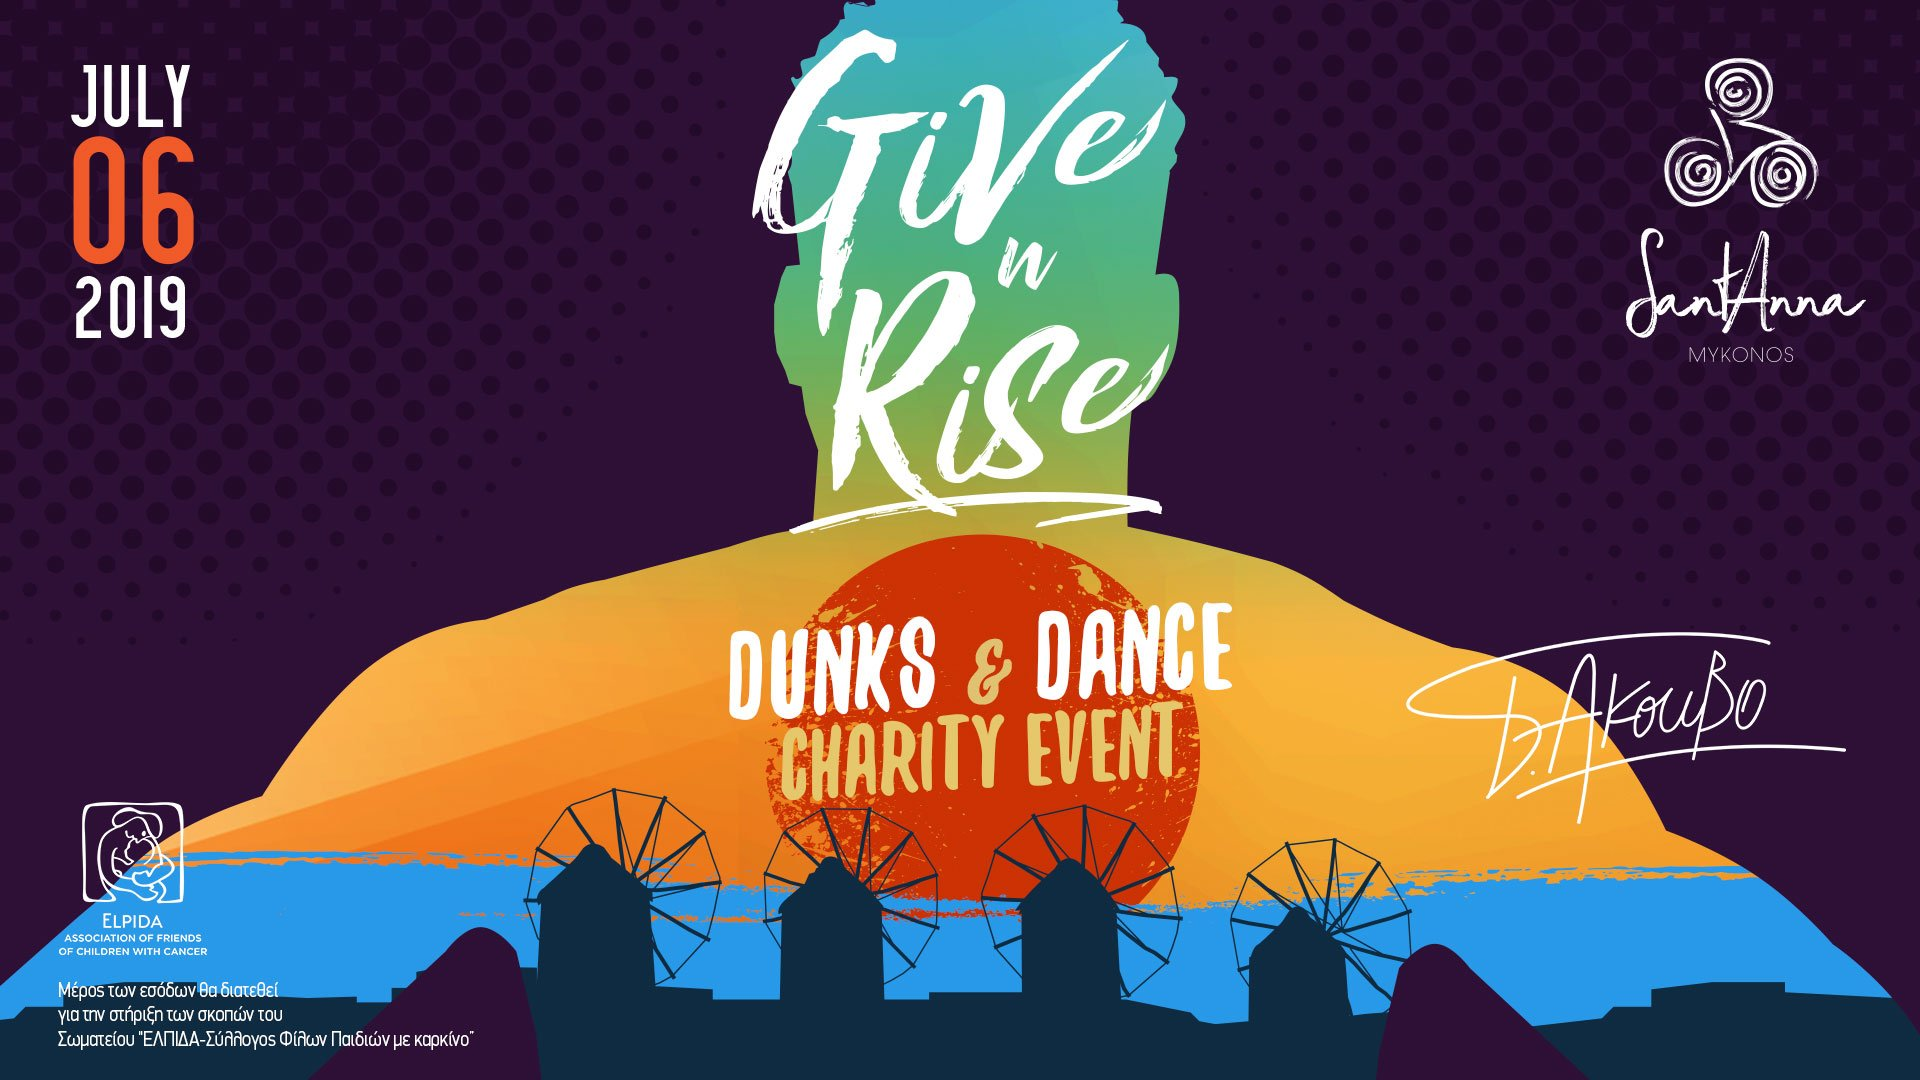 Give n' Rise-Dunks and Dance by Giannis Antetokounmpo!